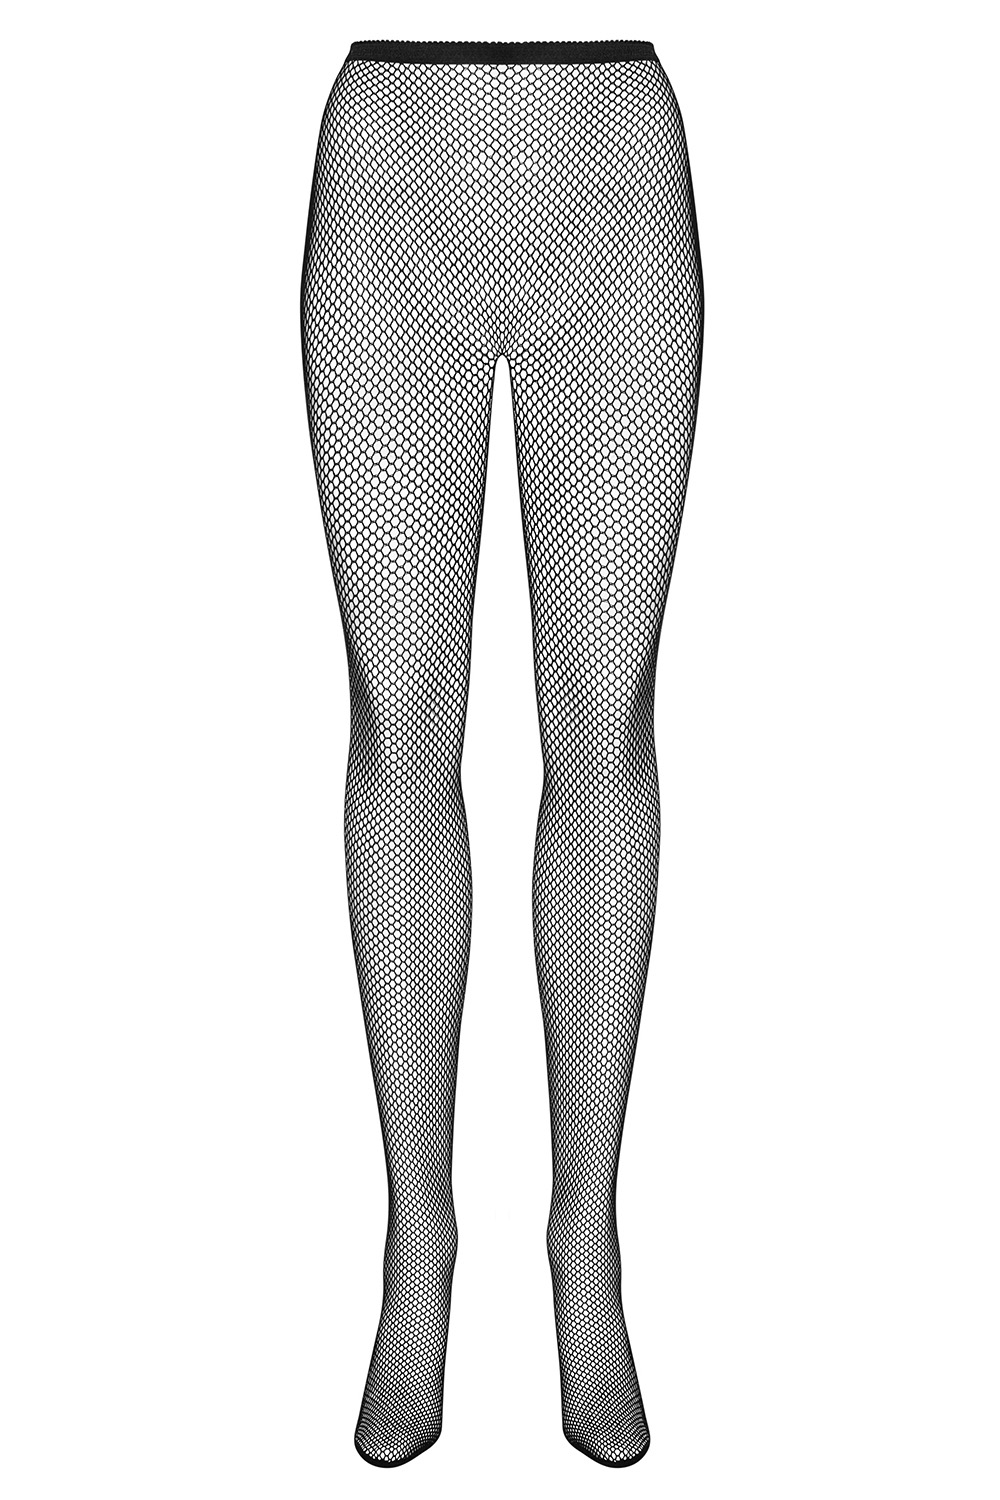 Kabaretka Obsessive Tights S233